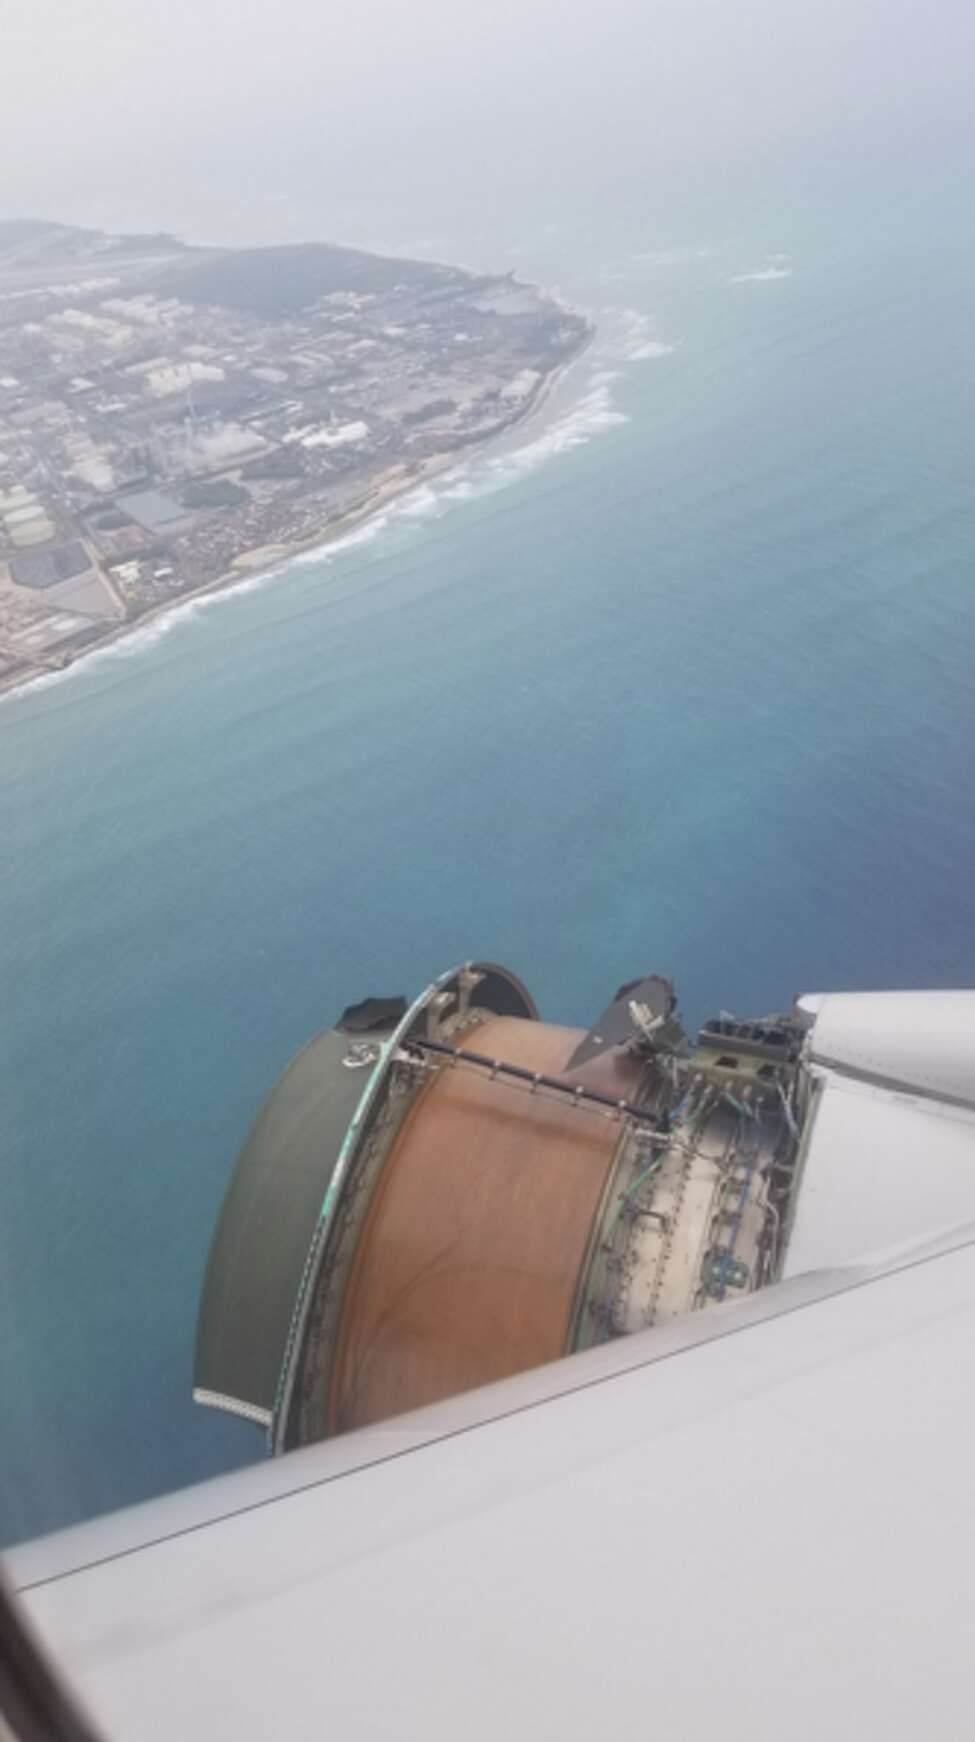 The worst travel horror stories from 2018: United flight from SFO to Honolulu loses engine parts while mid-air in terrifying ordeal A United Airlines plane traveling from San Francisco to Honolulu made an emergency landing after losing parts of an engine while mid-air. Passengers recorded photos and videos depicting the airplane's starboard-side engine exposed, high above the Pacific Ocean. FULL STORY